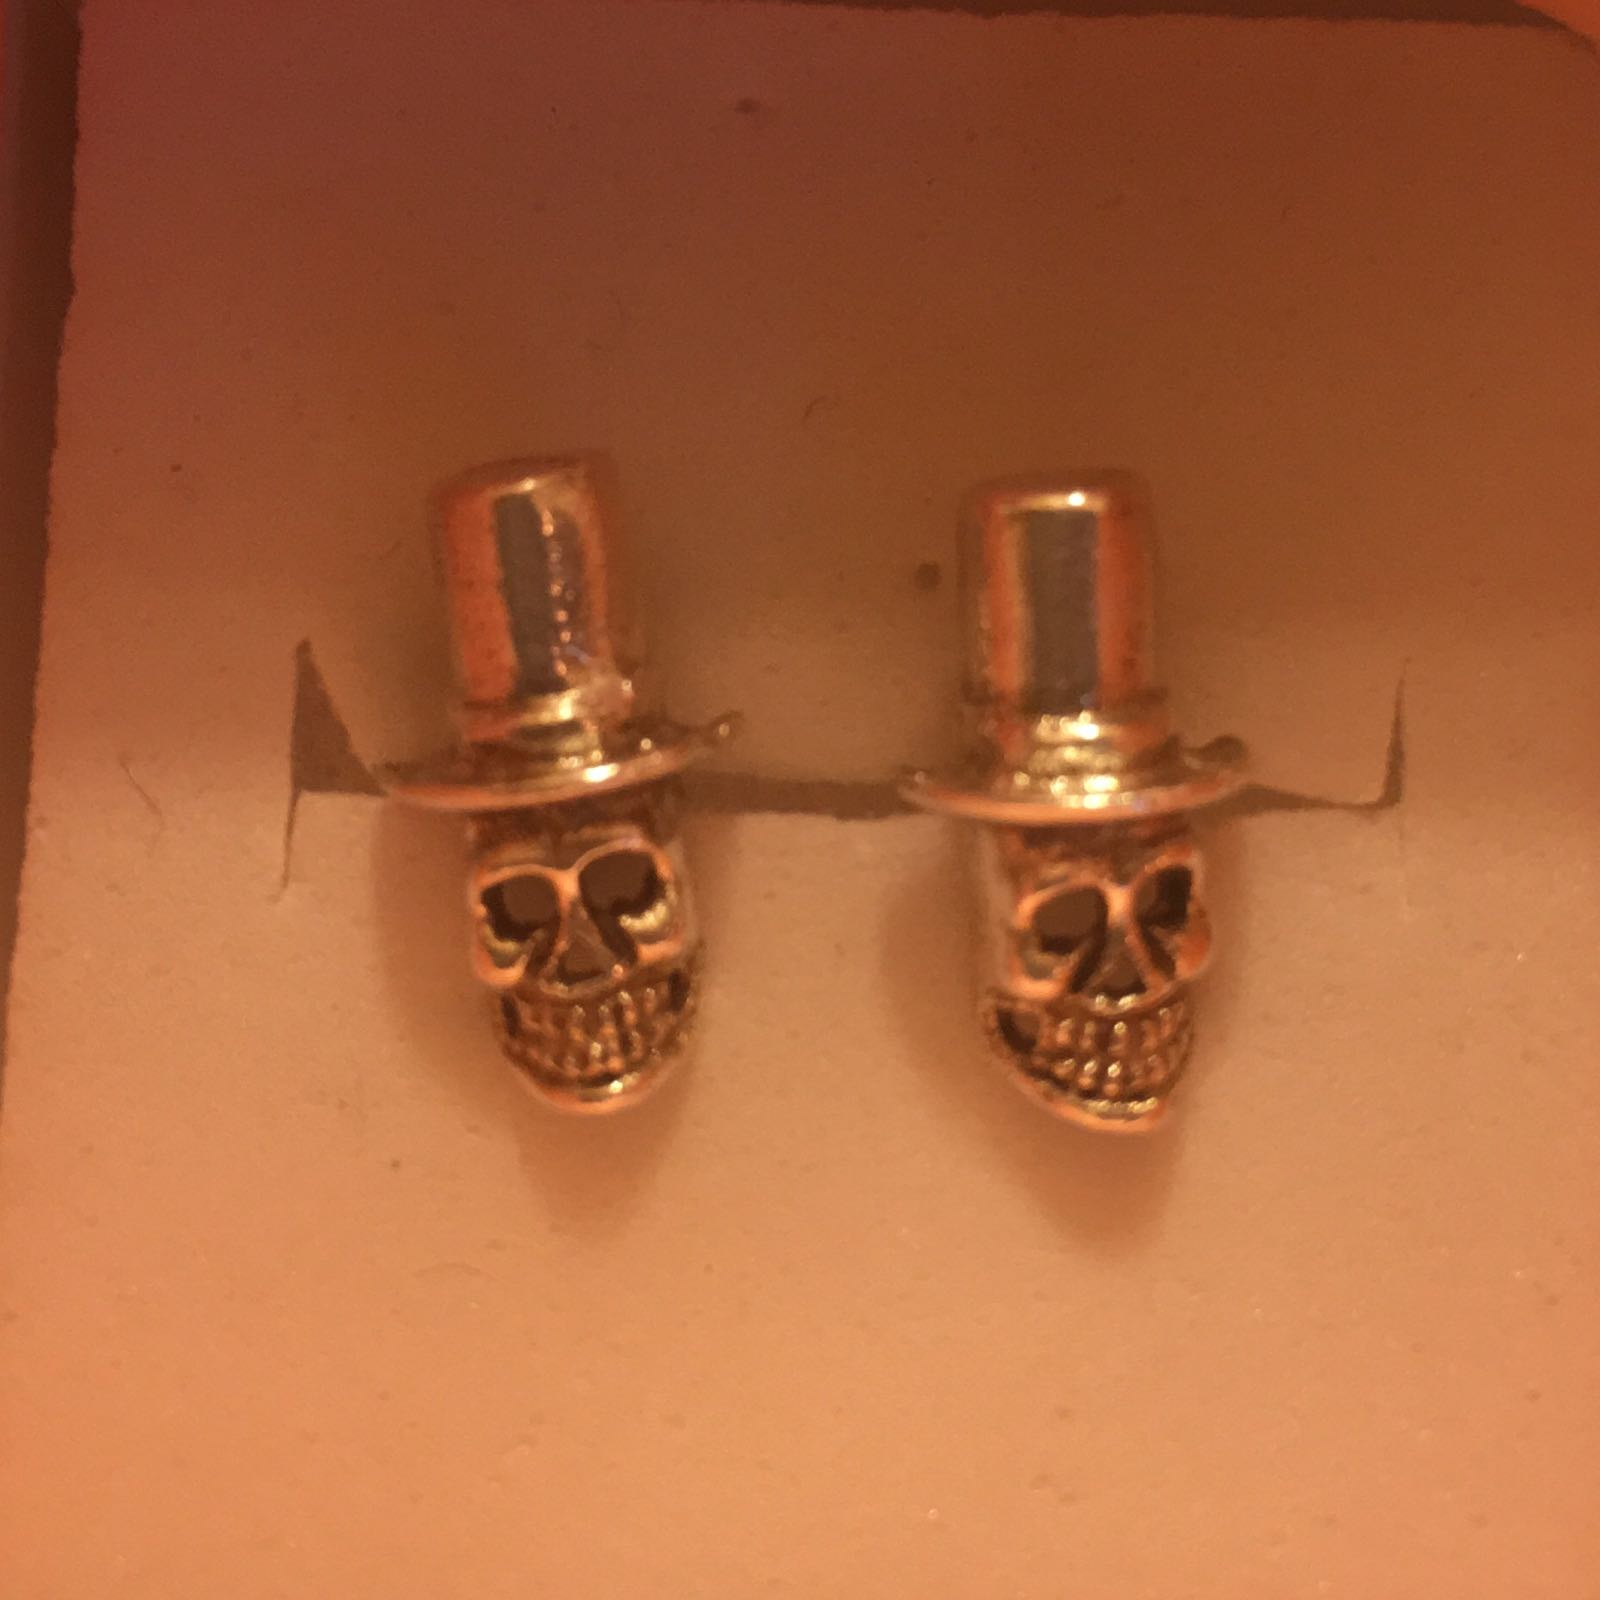 Earring Studs 925 silver skull in top hat